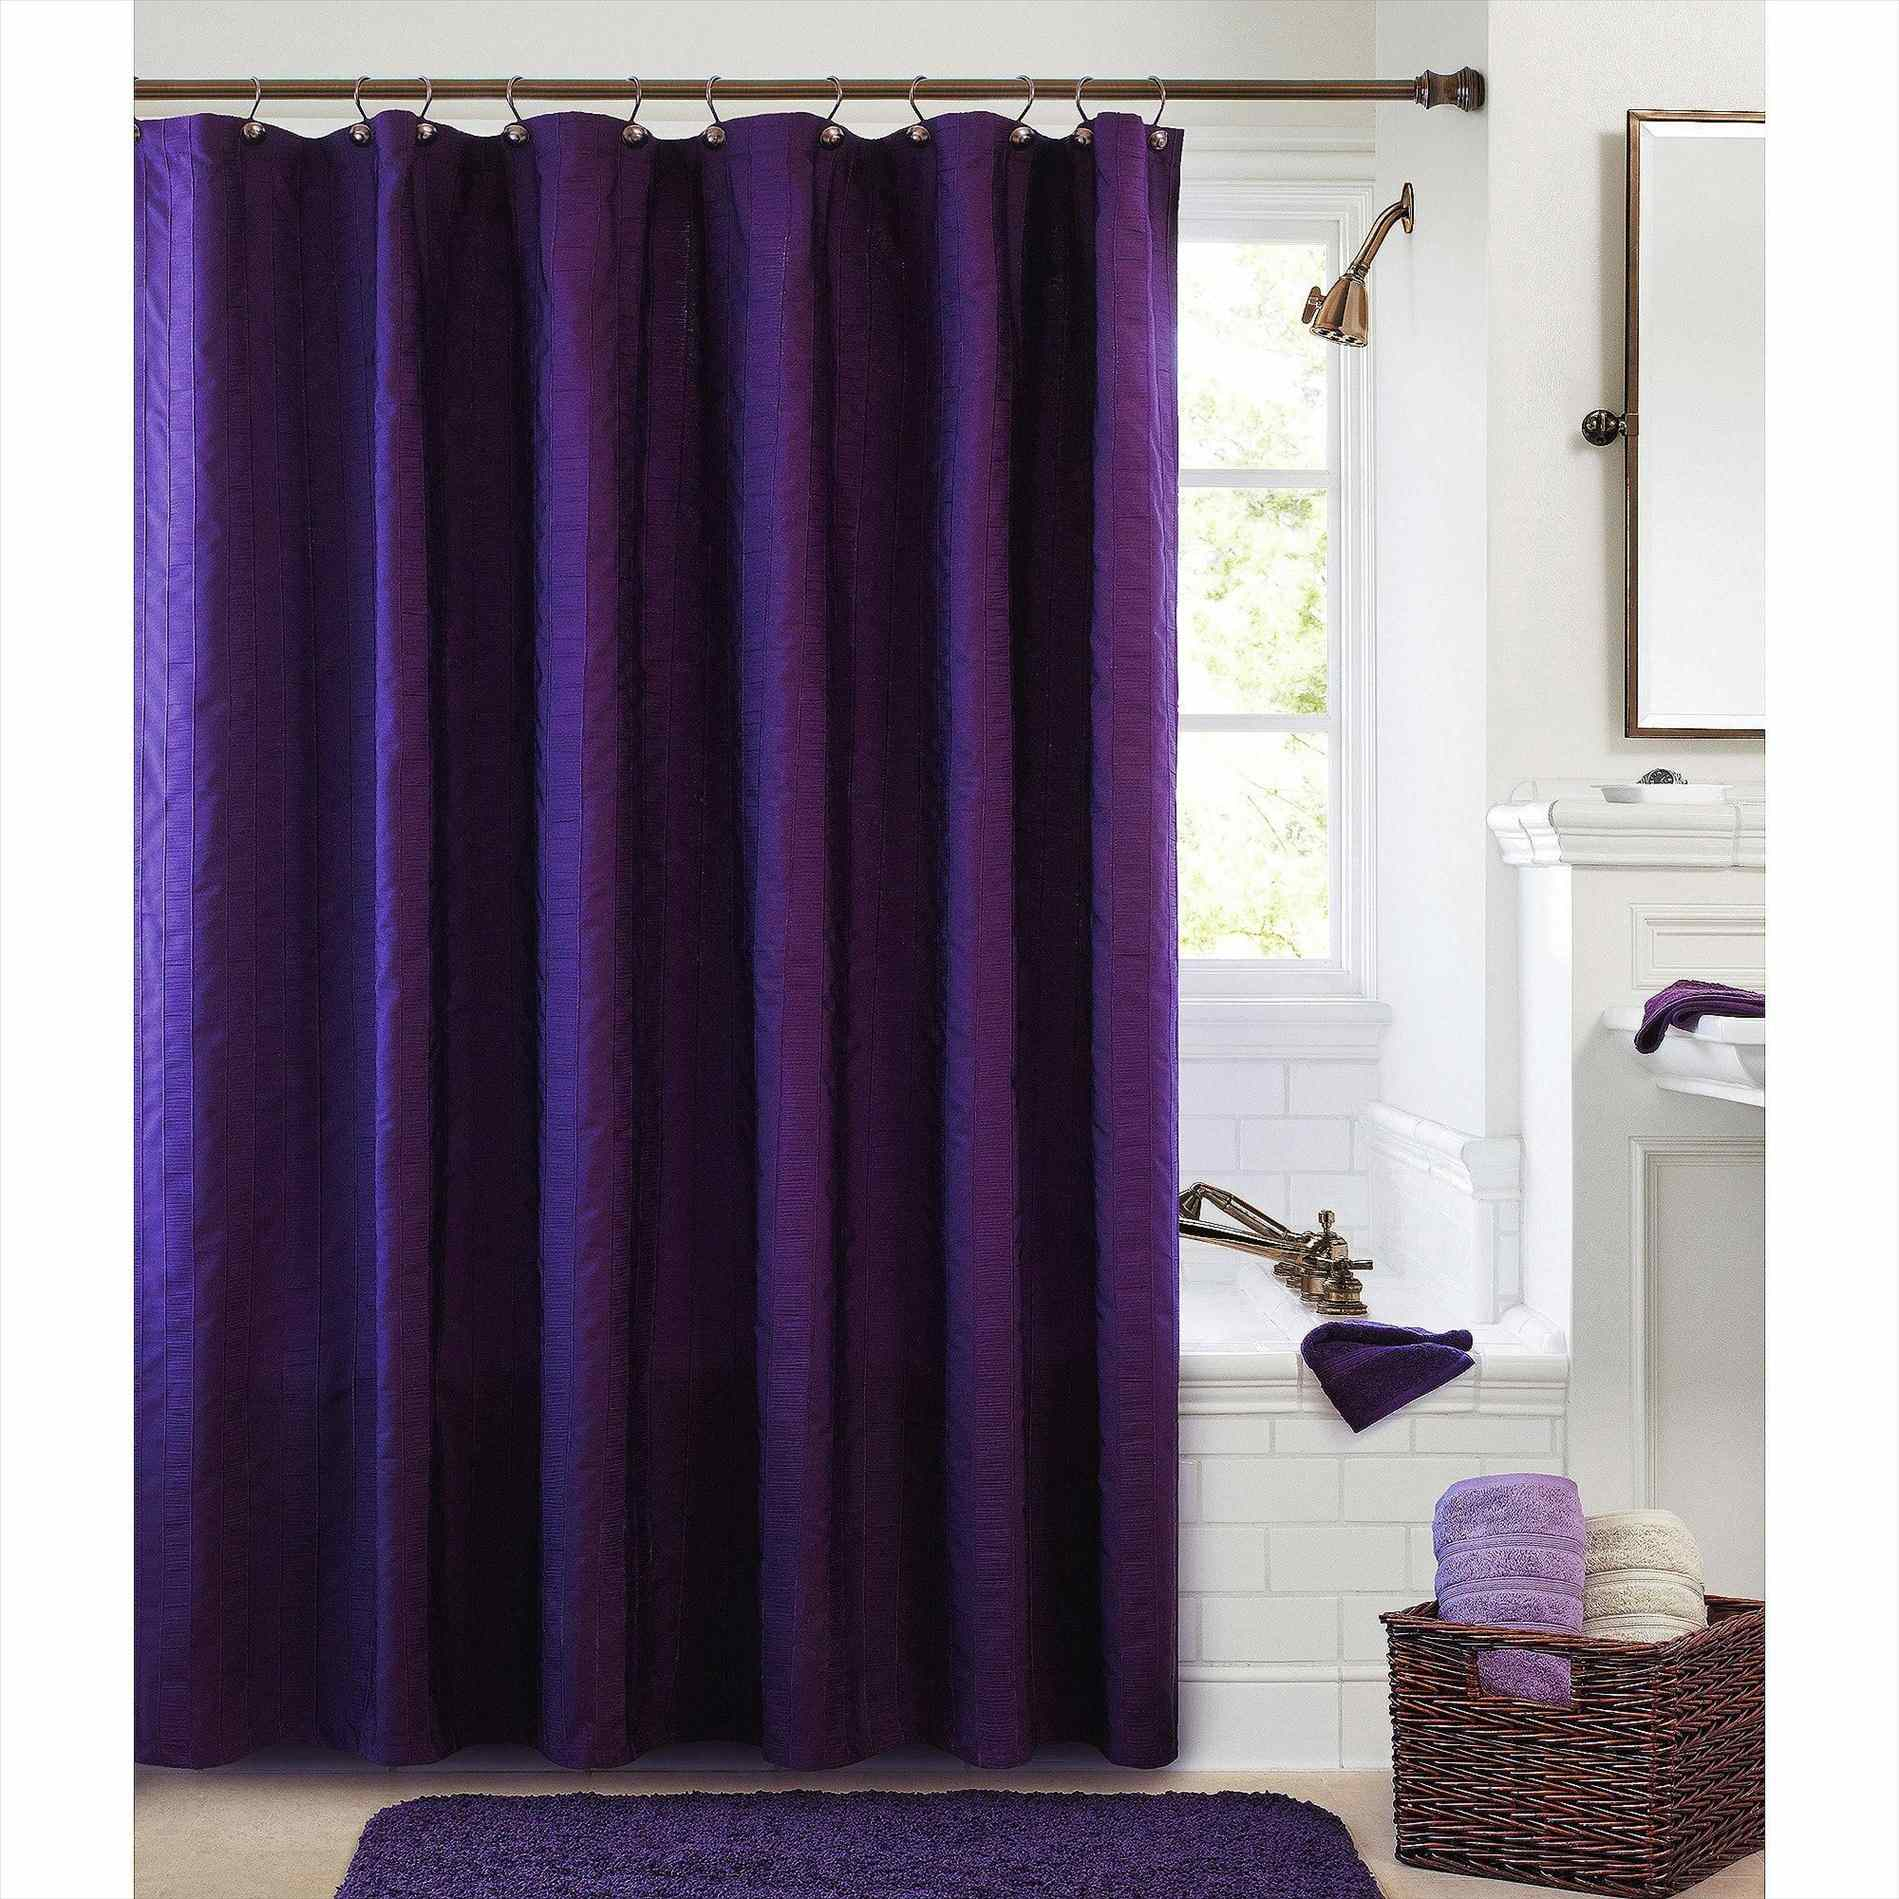 Sears Fabric Shower Curtains Home The Honoroak